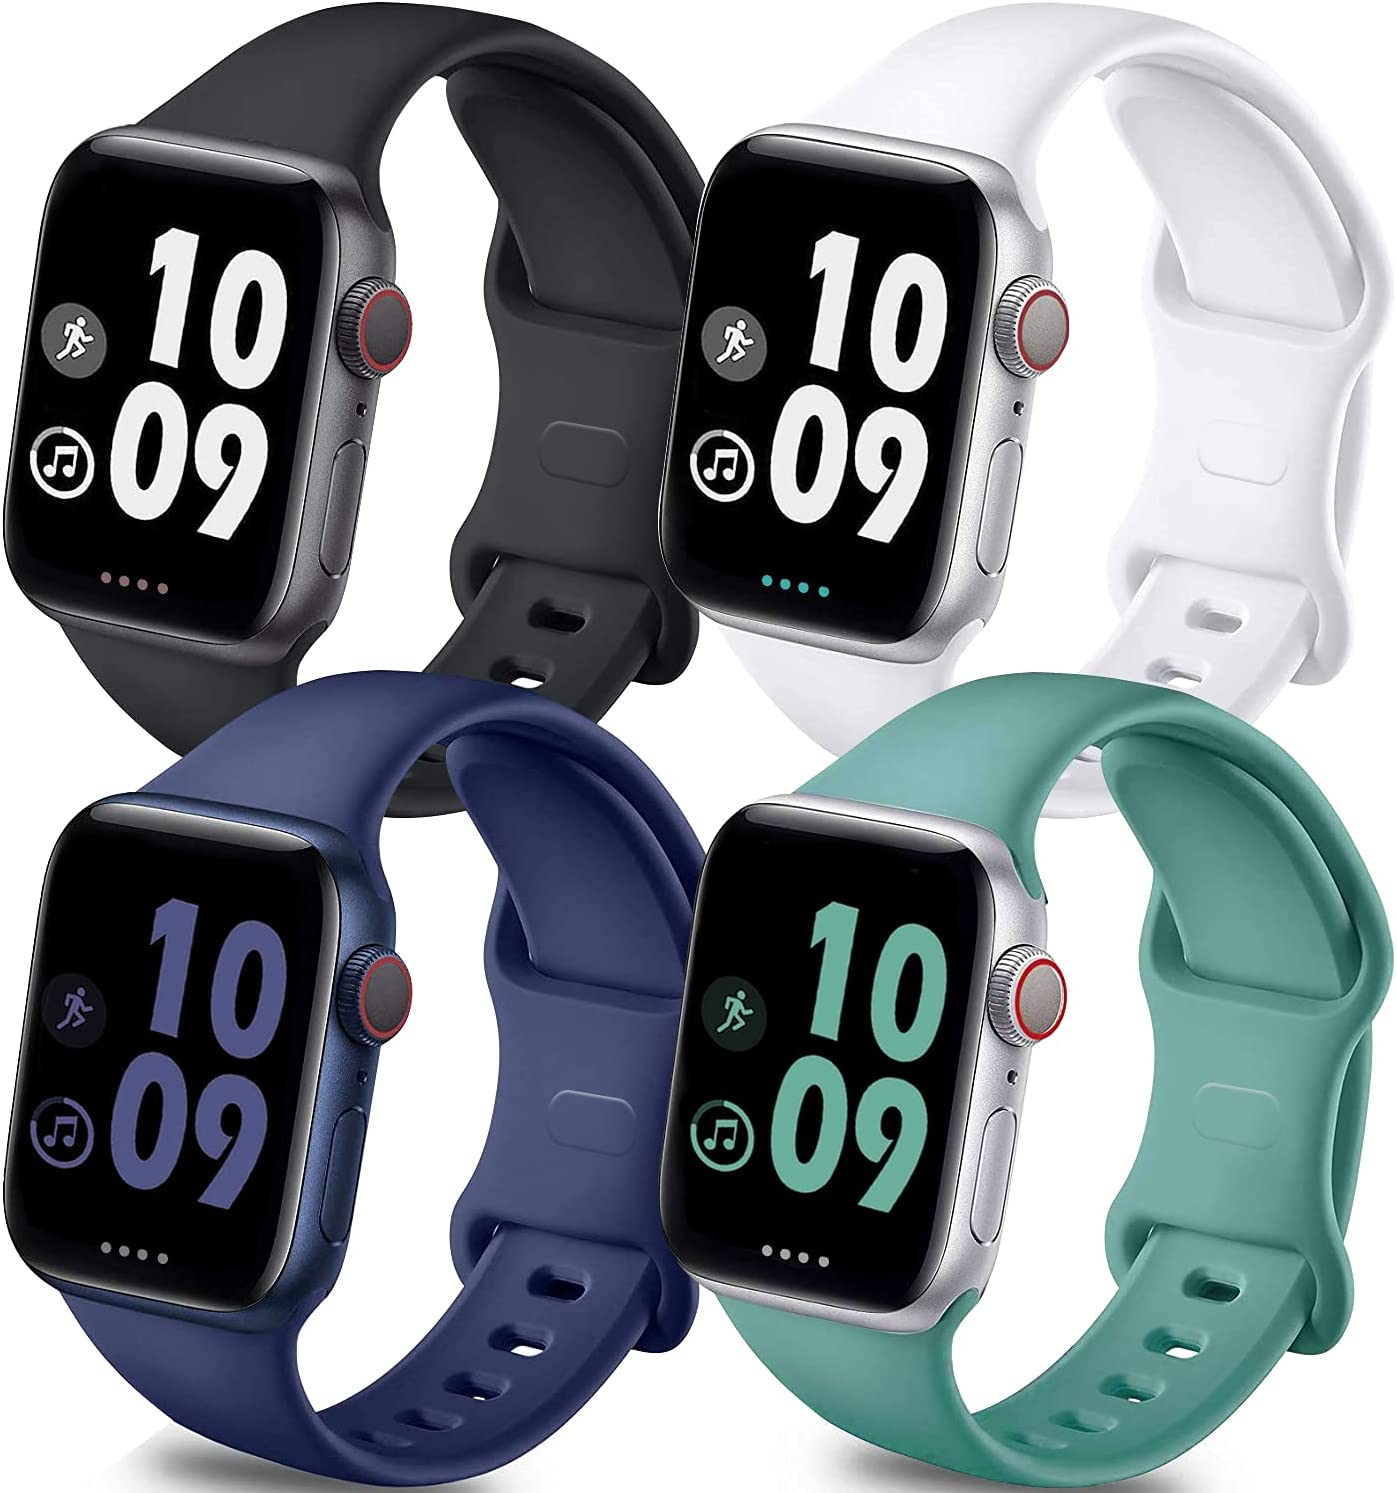 Brigtlaiff Pack 4 Compatible with Watch Band 38mm 40mm 42mm 44mm, Soft Silicone Replacement Band for Watch Series SE/6/5/4/3/2/1 (Black/White/MidnightBlue/PineGreen, 38mm/40mm-M/L)